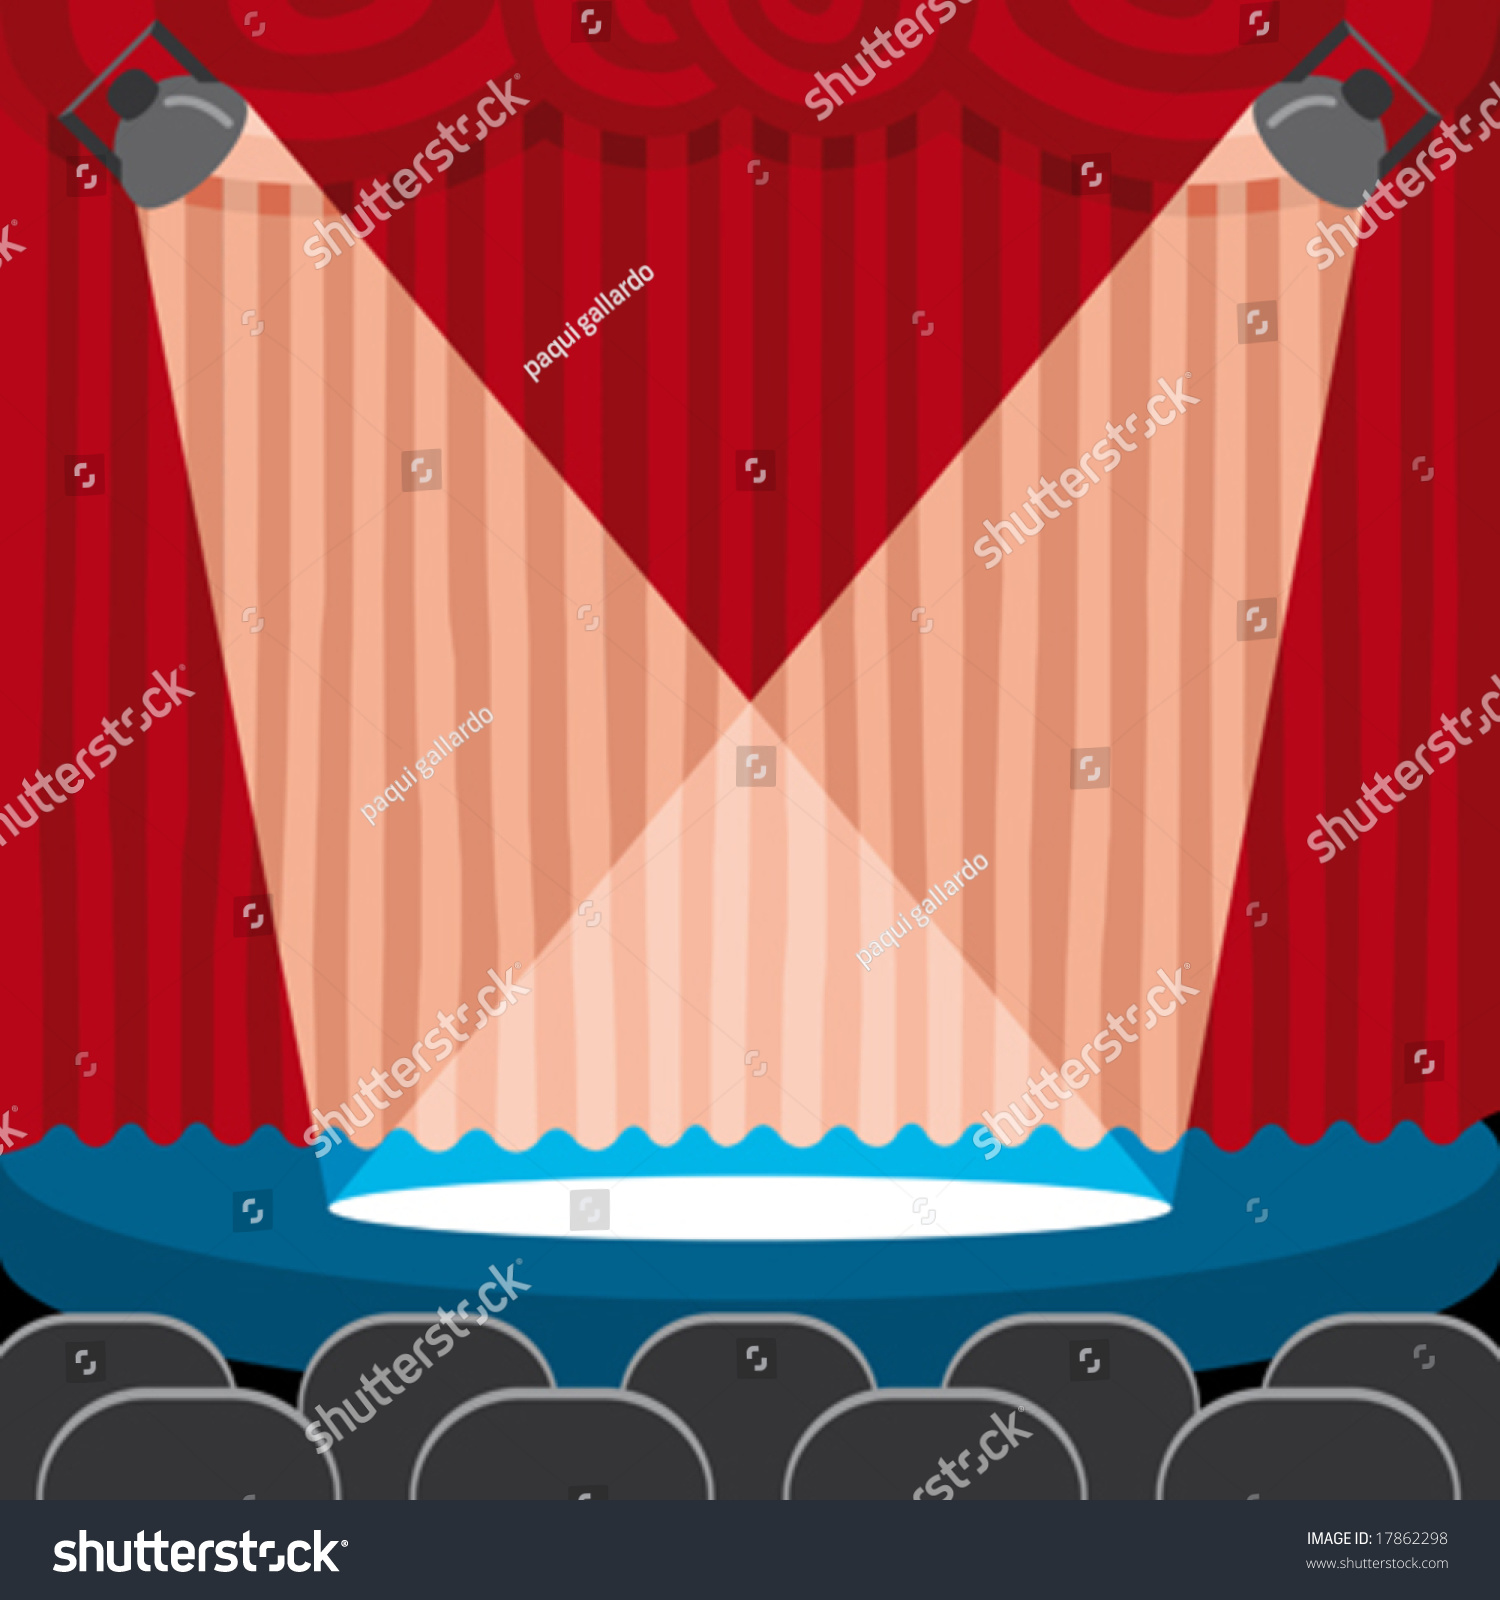 Red stage curtain with lights - A Red Theatre Curtain With Light On The Scene Stock Vector Illustration 17862298 Shutterstock